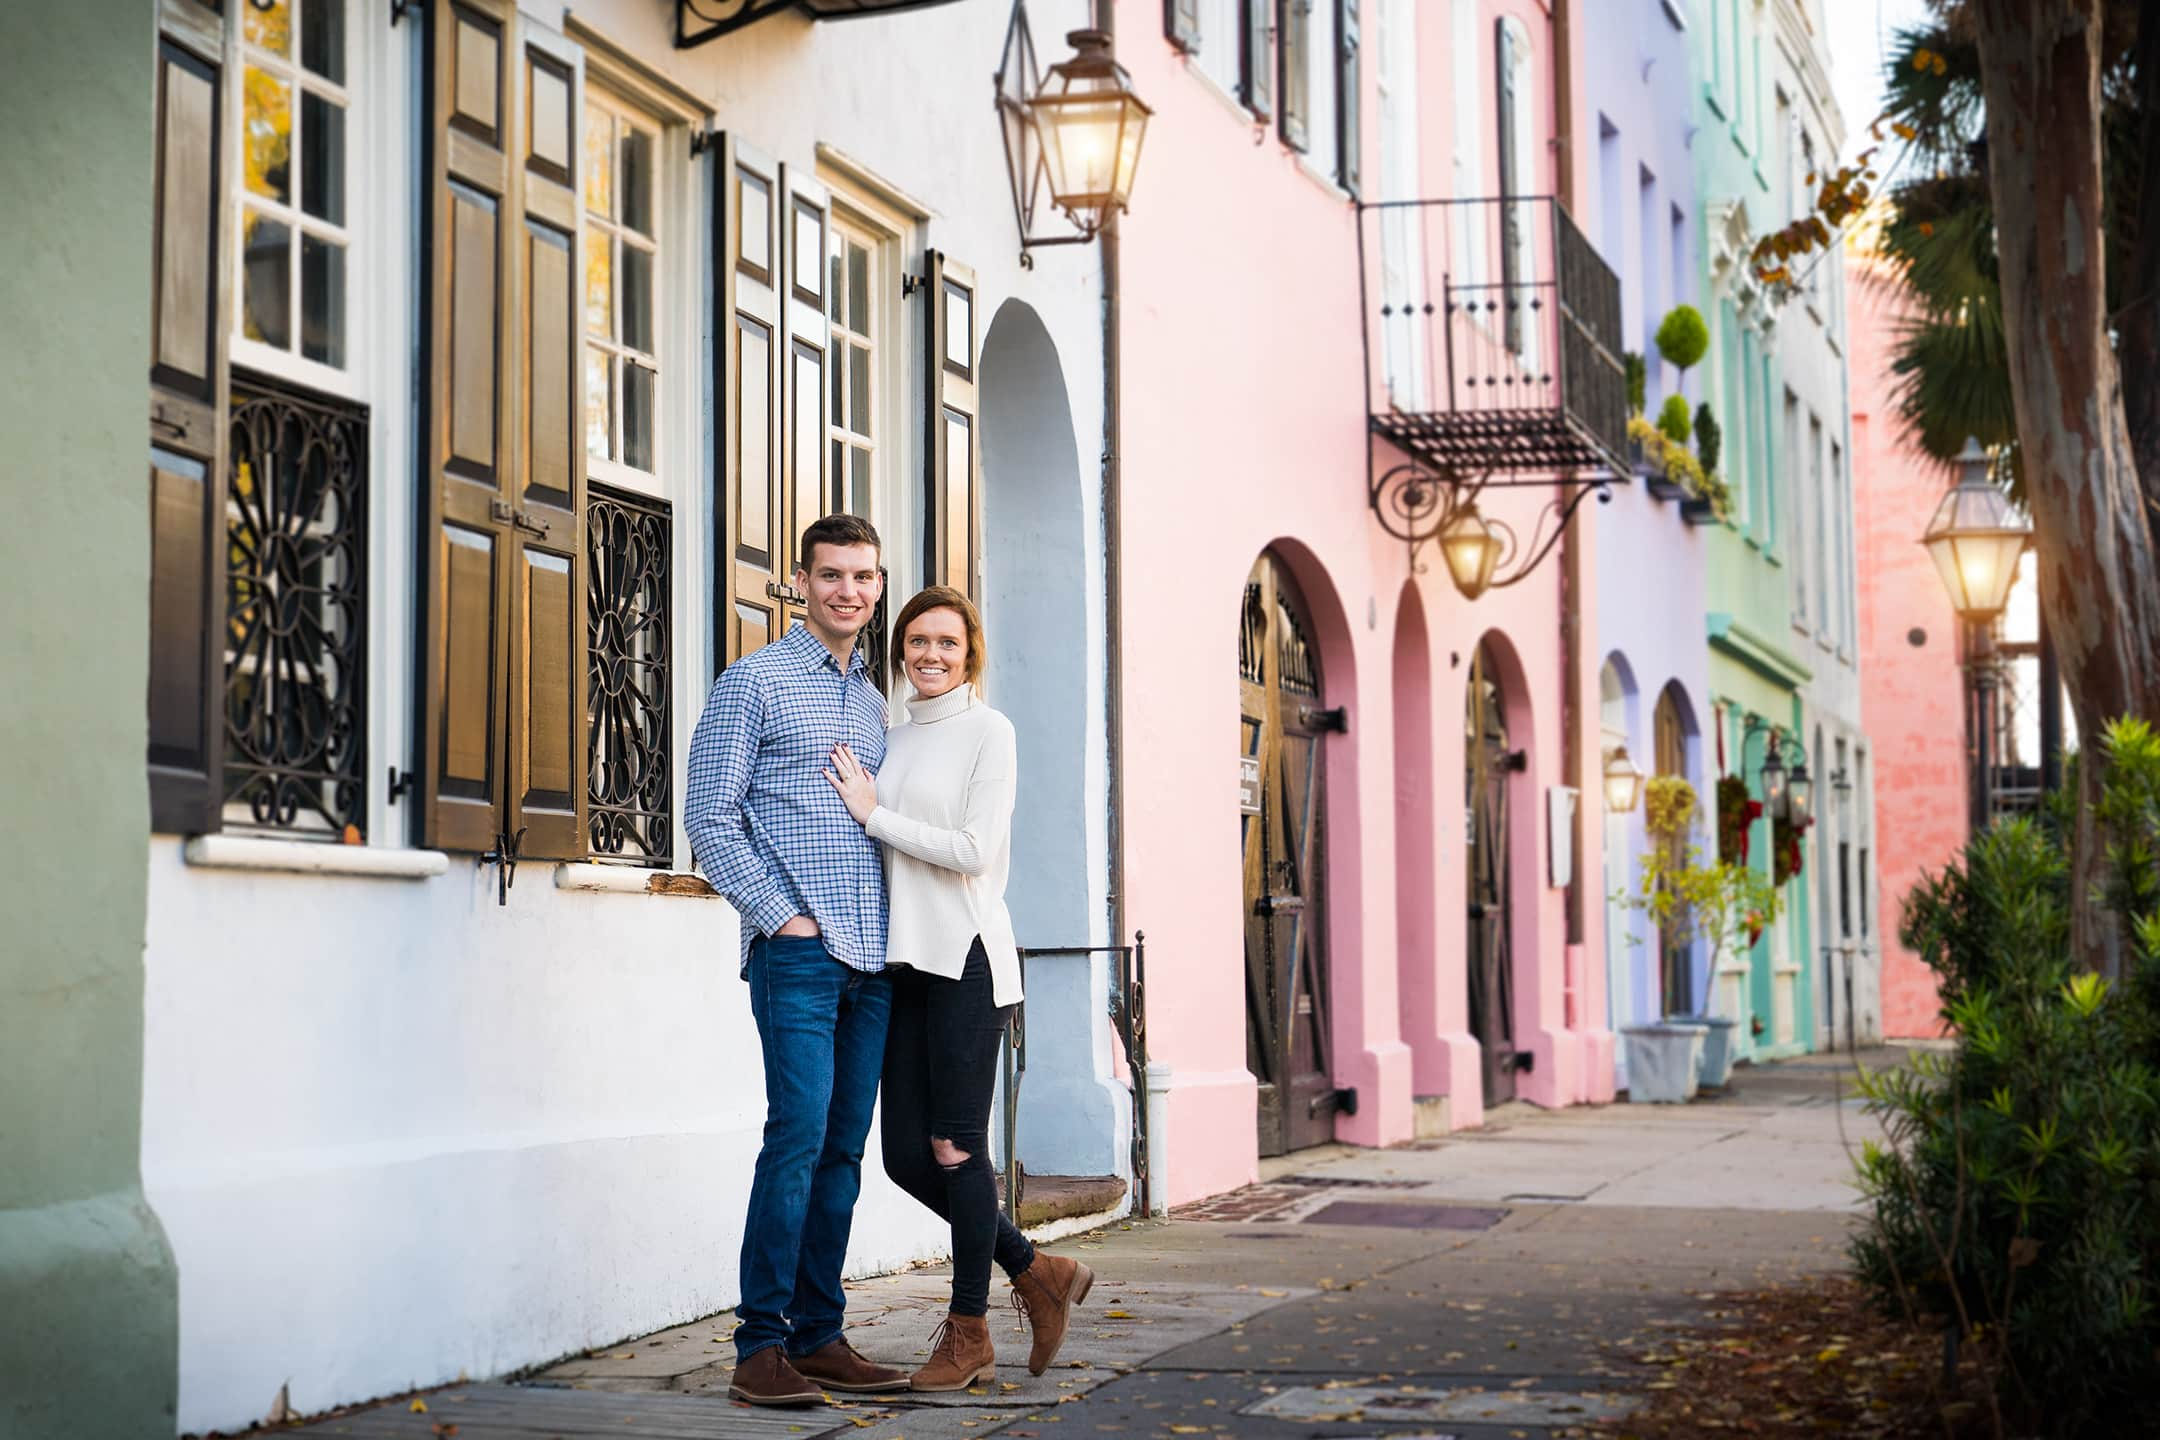 Engaged couple in front of colored houses